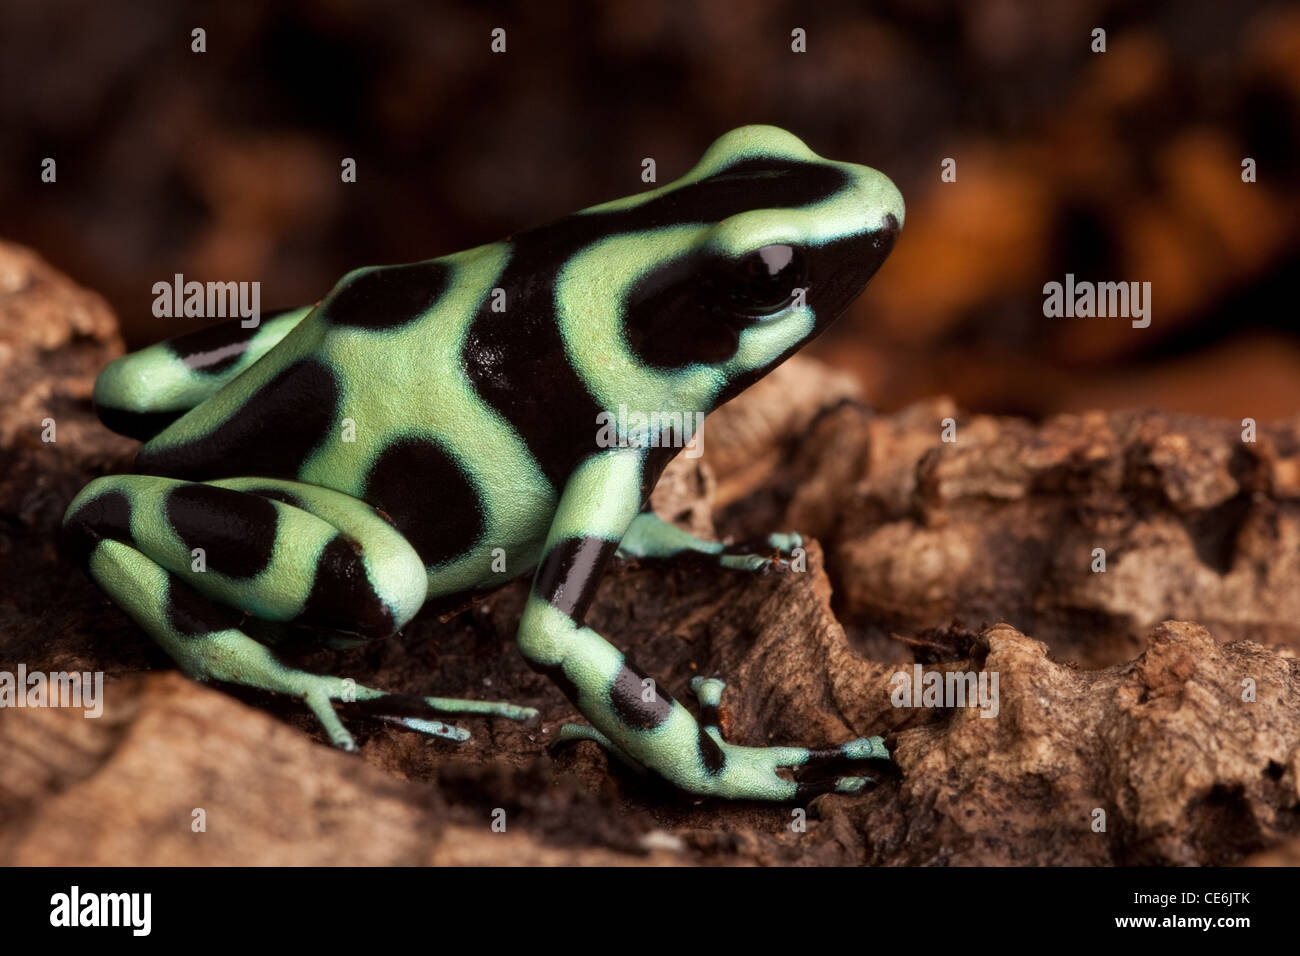 golden poison dart frog dendrobates auratus poisonous animal with bright warning colors lives in tropical rainforest - Stock Image